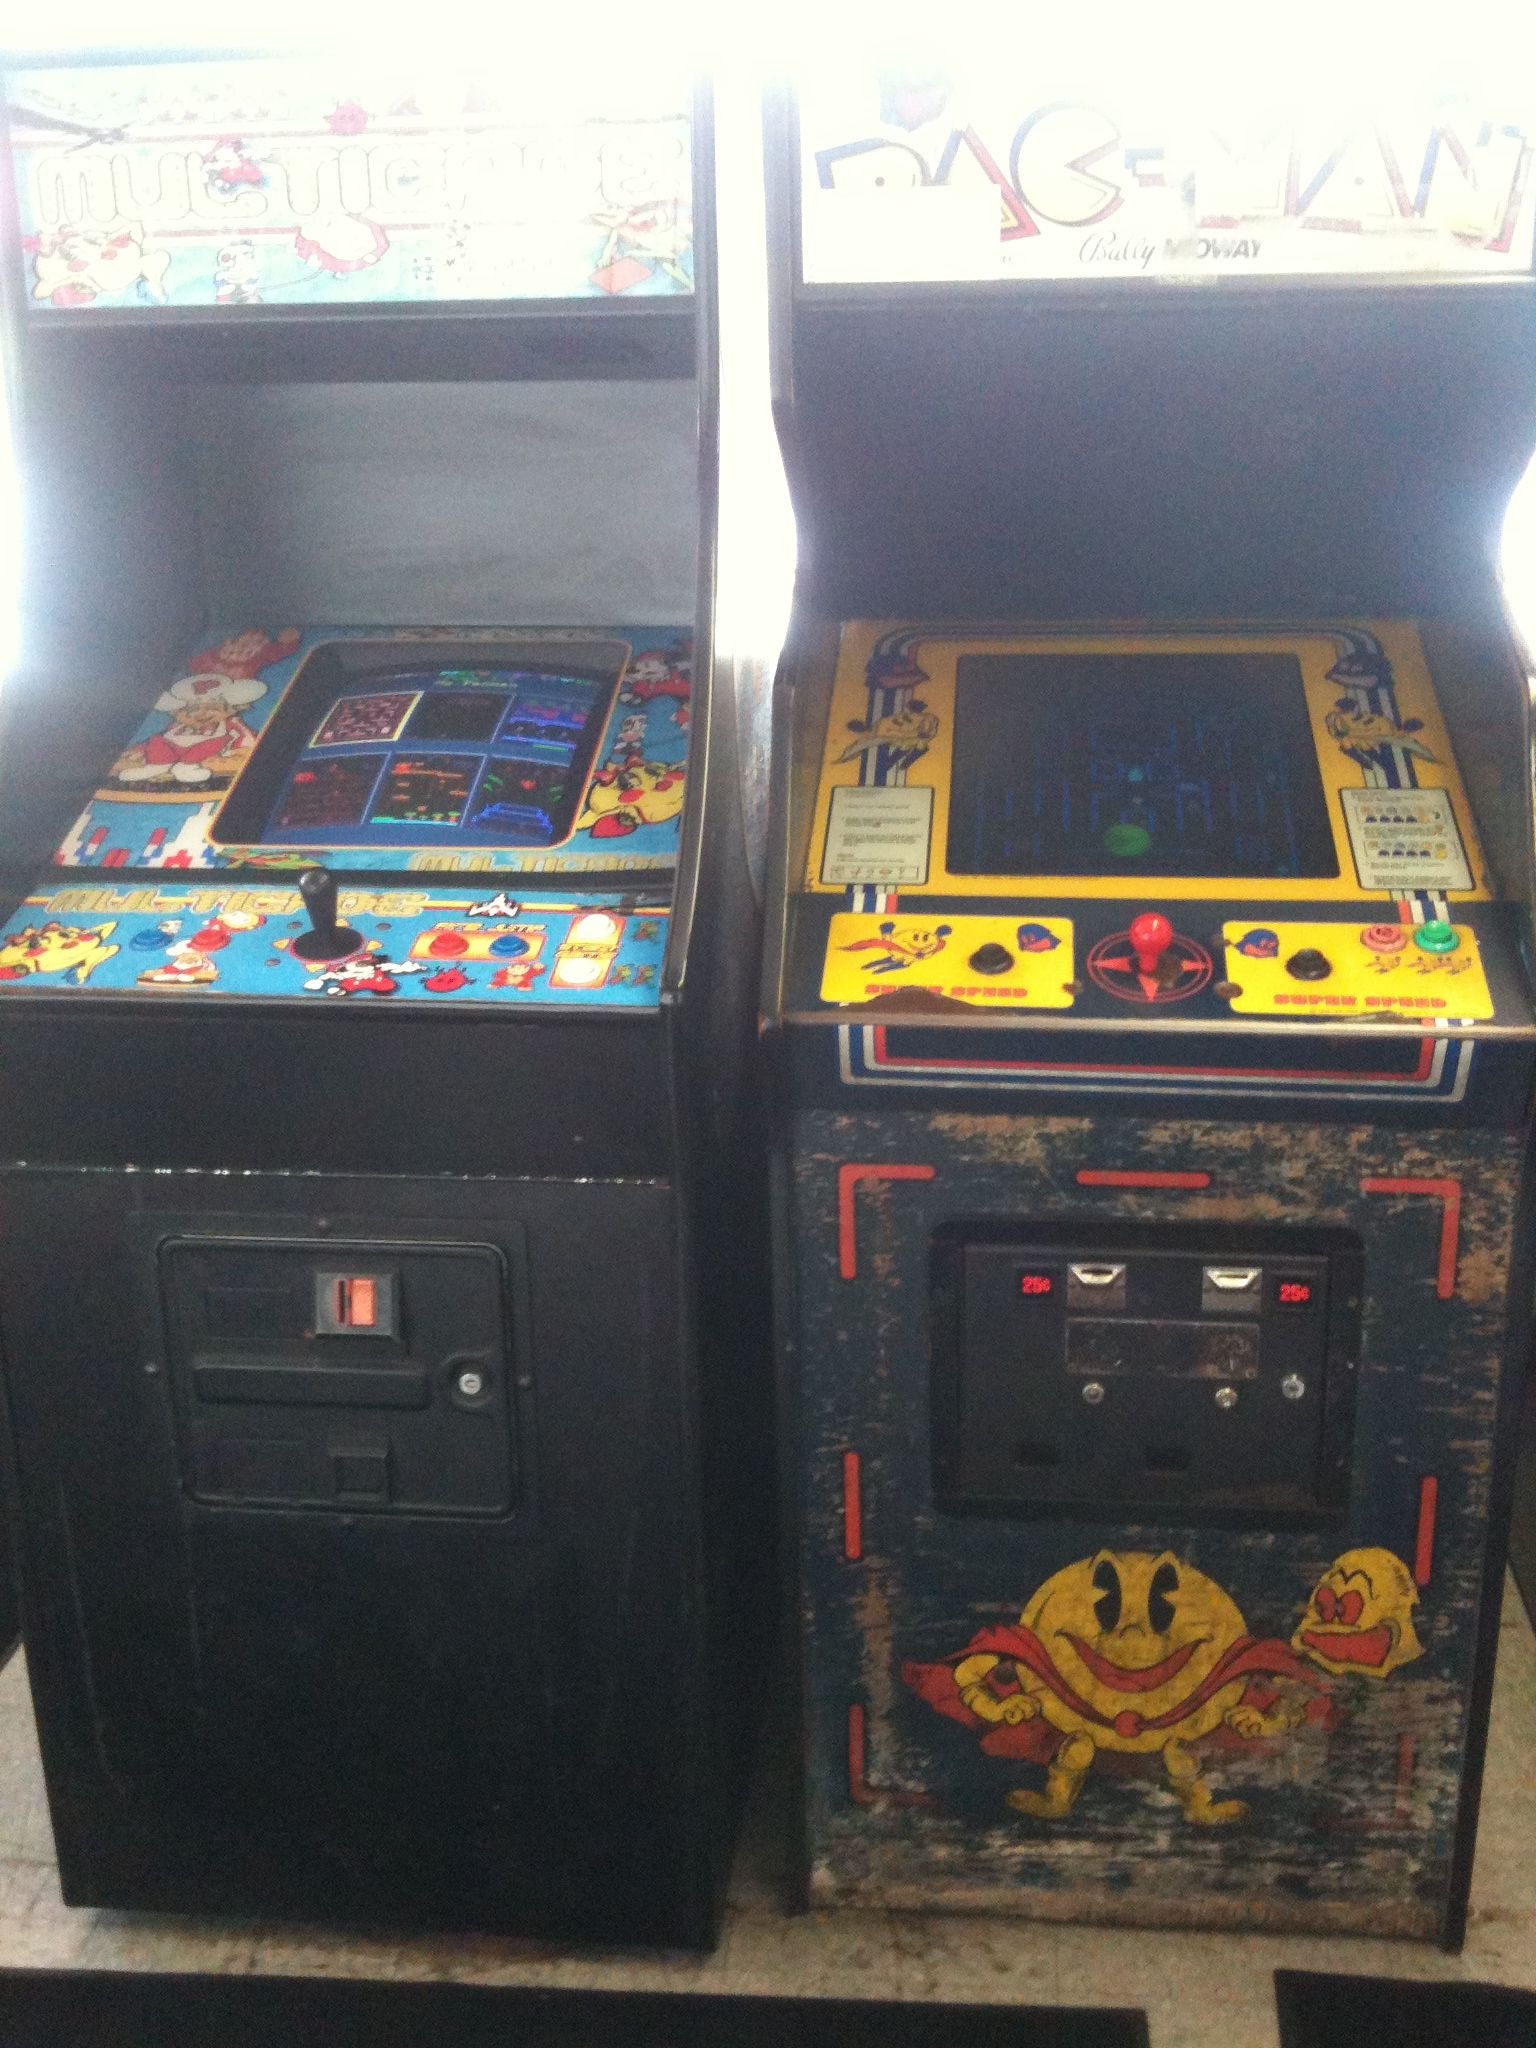 Old School (With images) Gaming products, Arcade games